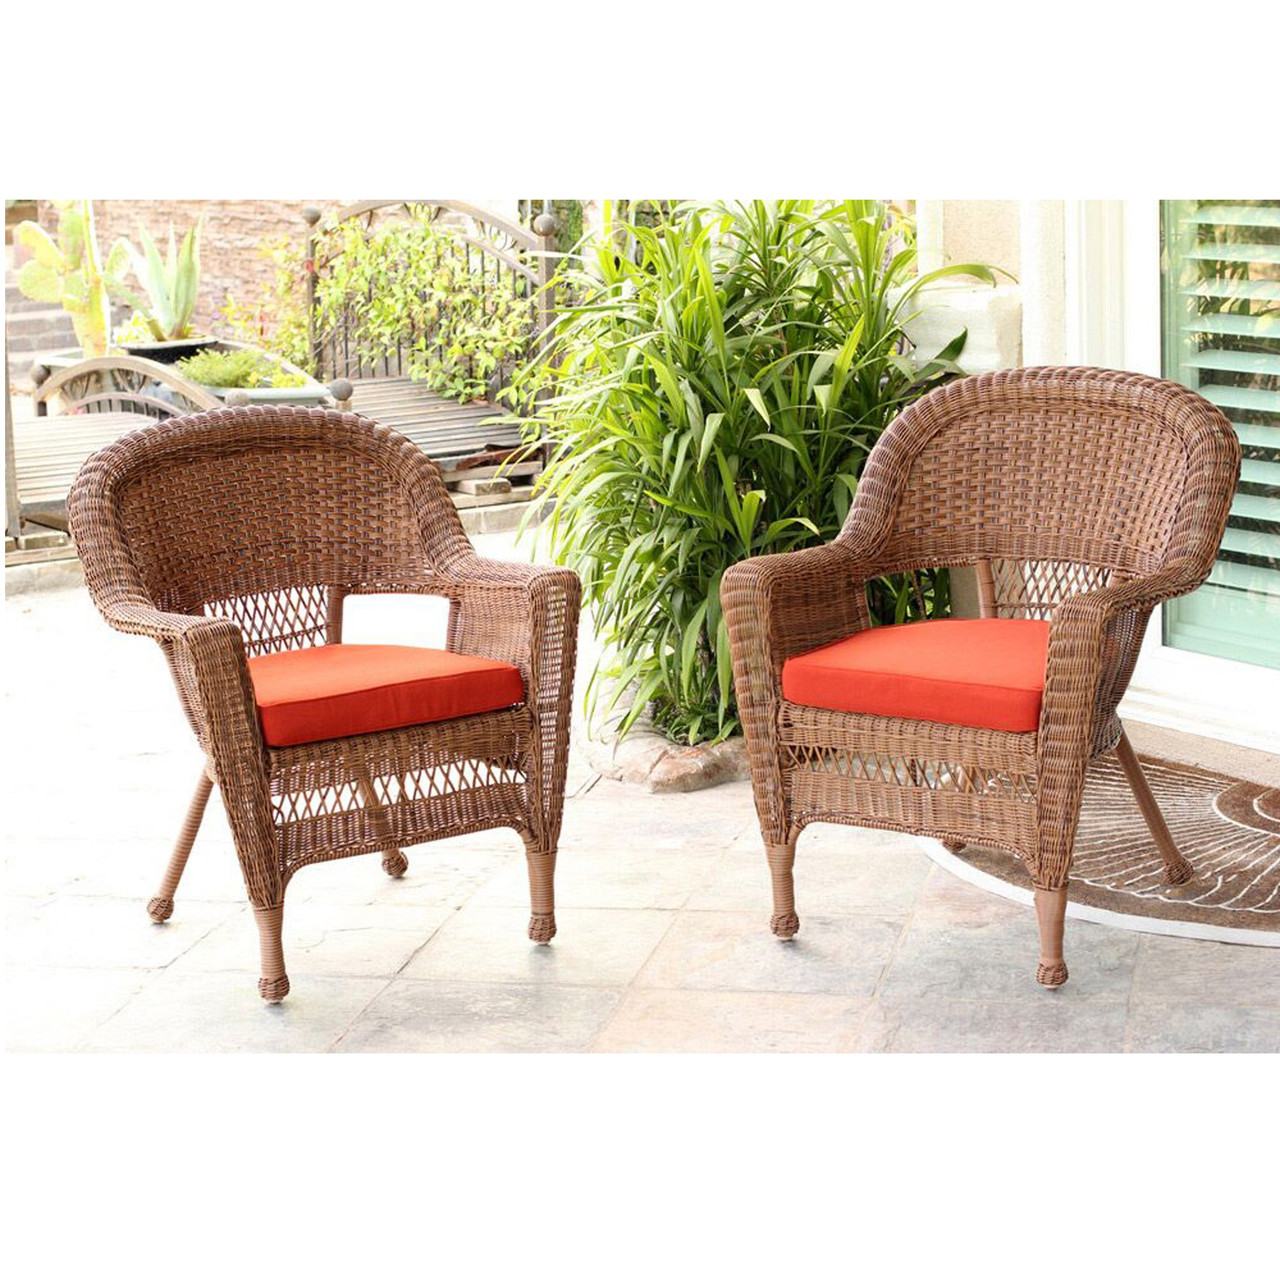 Astonishing Set Of 2 Honey Brown Resin Wicker Outdoor Patio Garden Chairs Red Cushions 31556166 Lamtechconsult Wood Chair Design Ideas Lamtechconsultcom